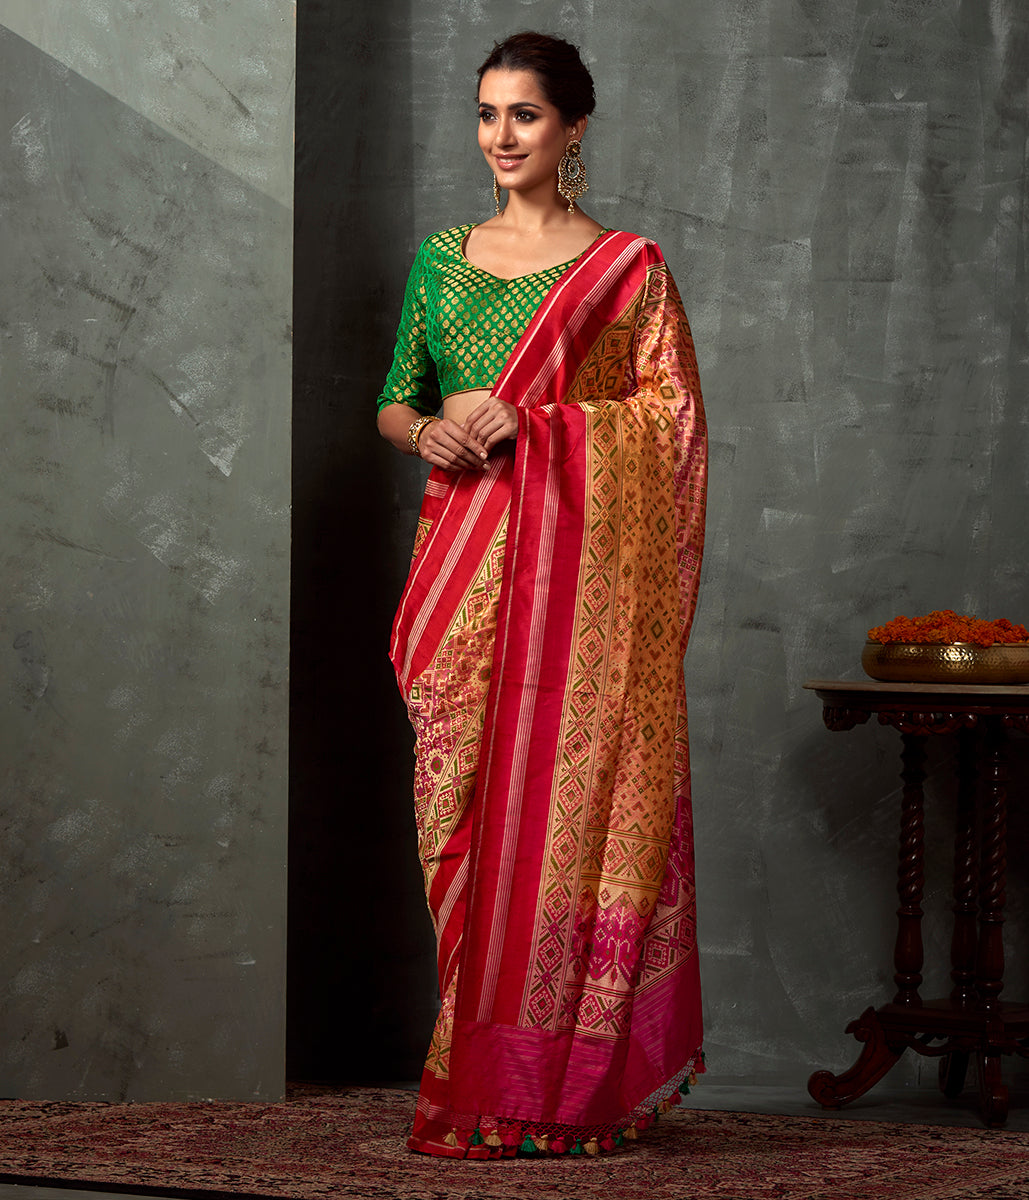 Handwoven Peach Meenakari Patola Saree with Red Border